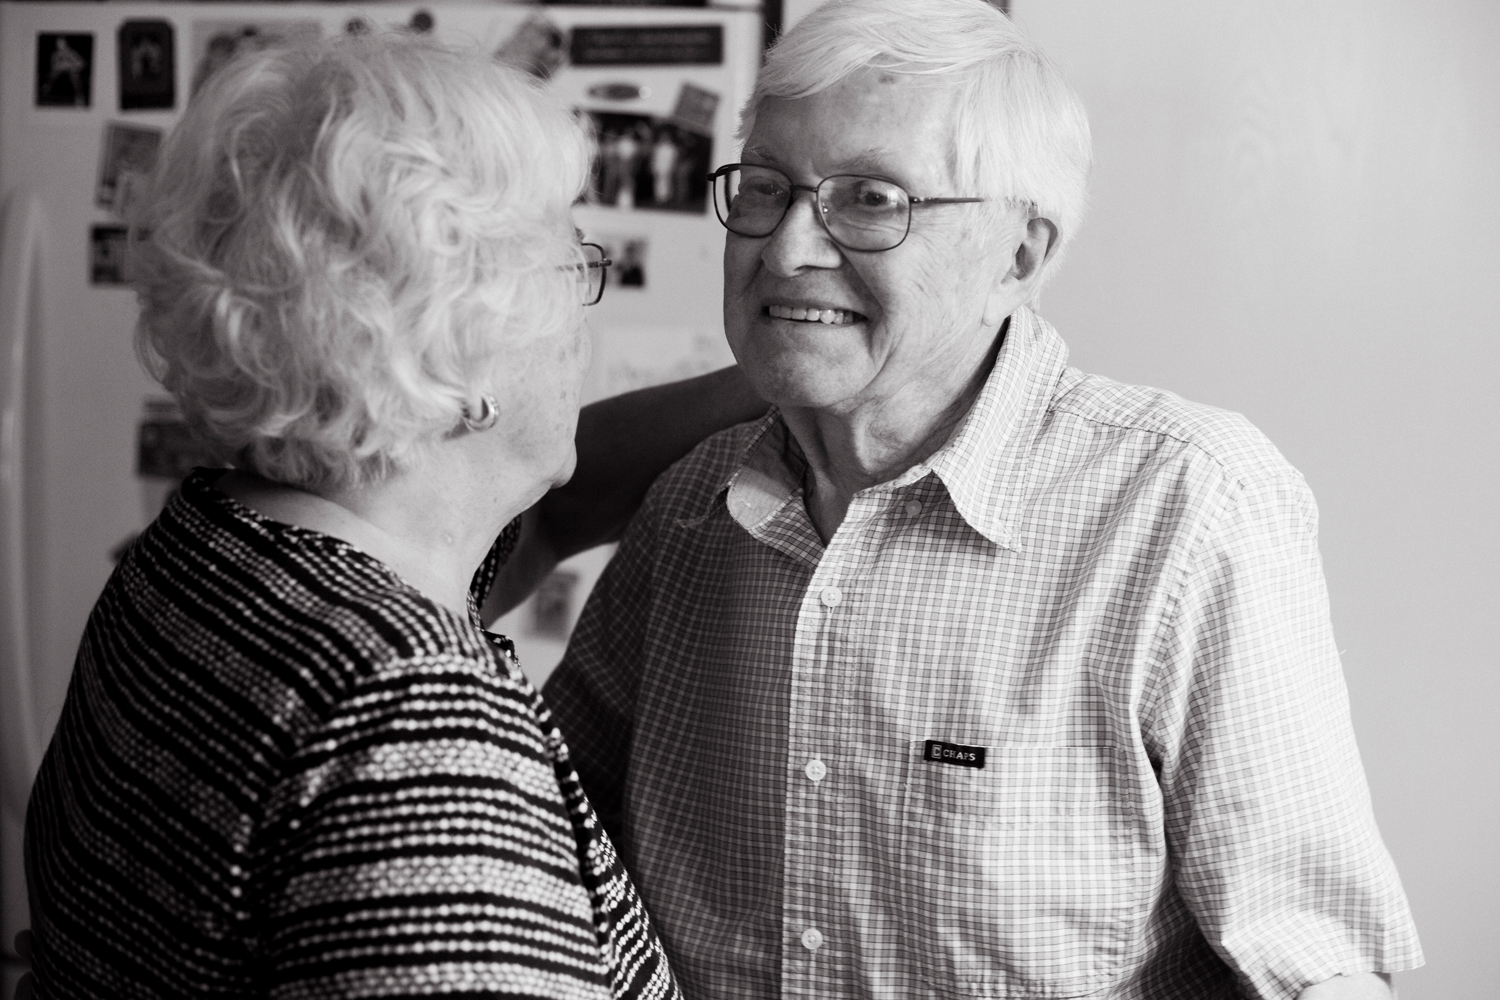 grandpa smiling dancing with his wife